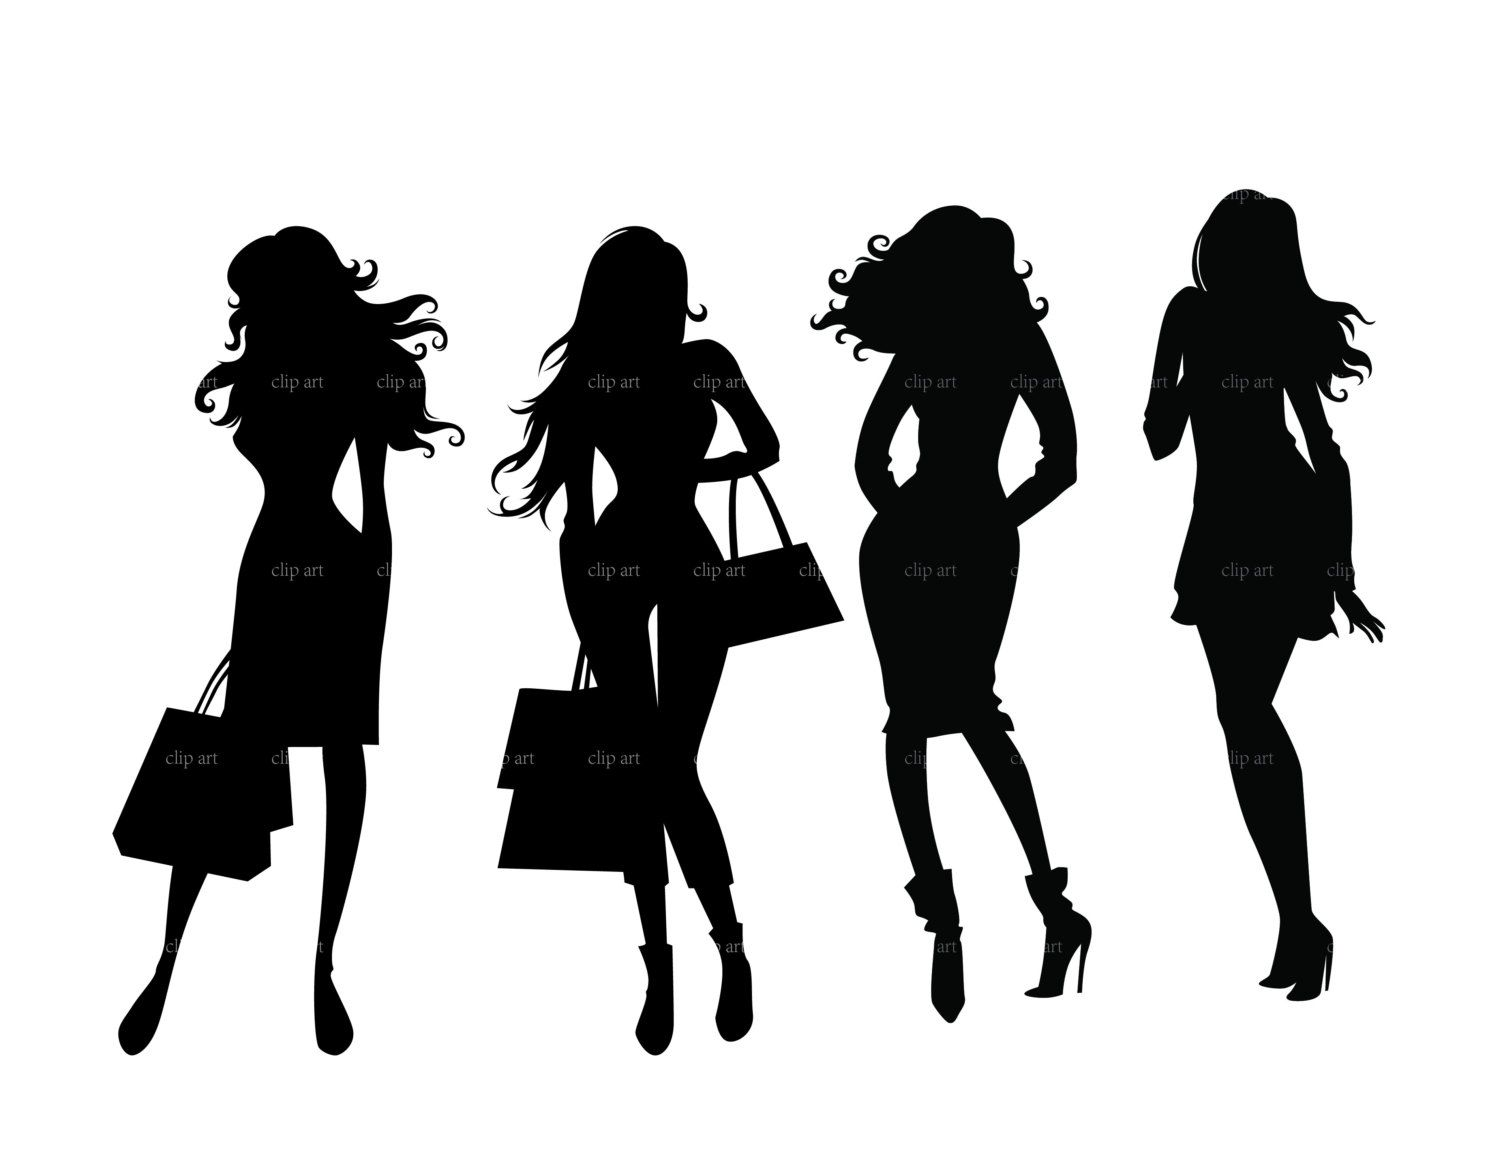 lady boss silhouette - Google Search | Silhouettes ...